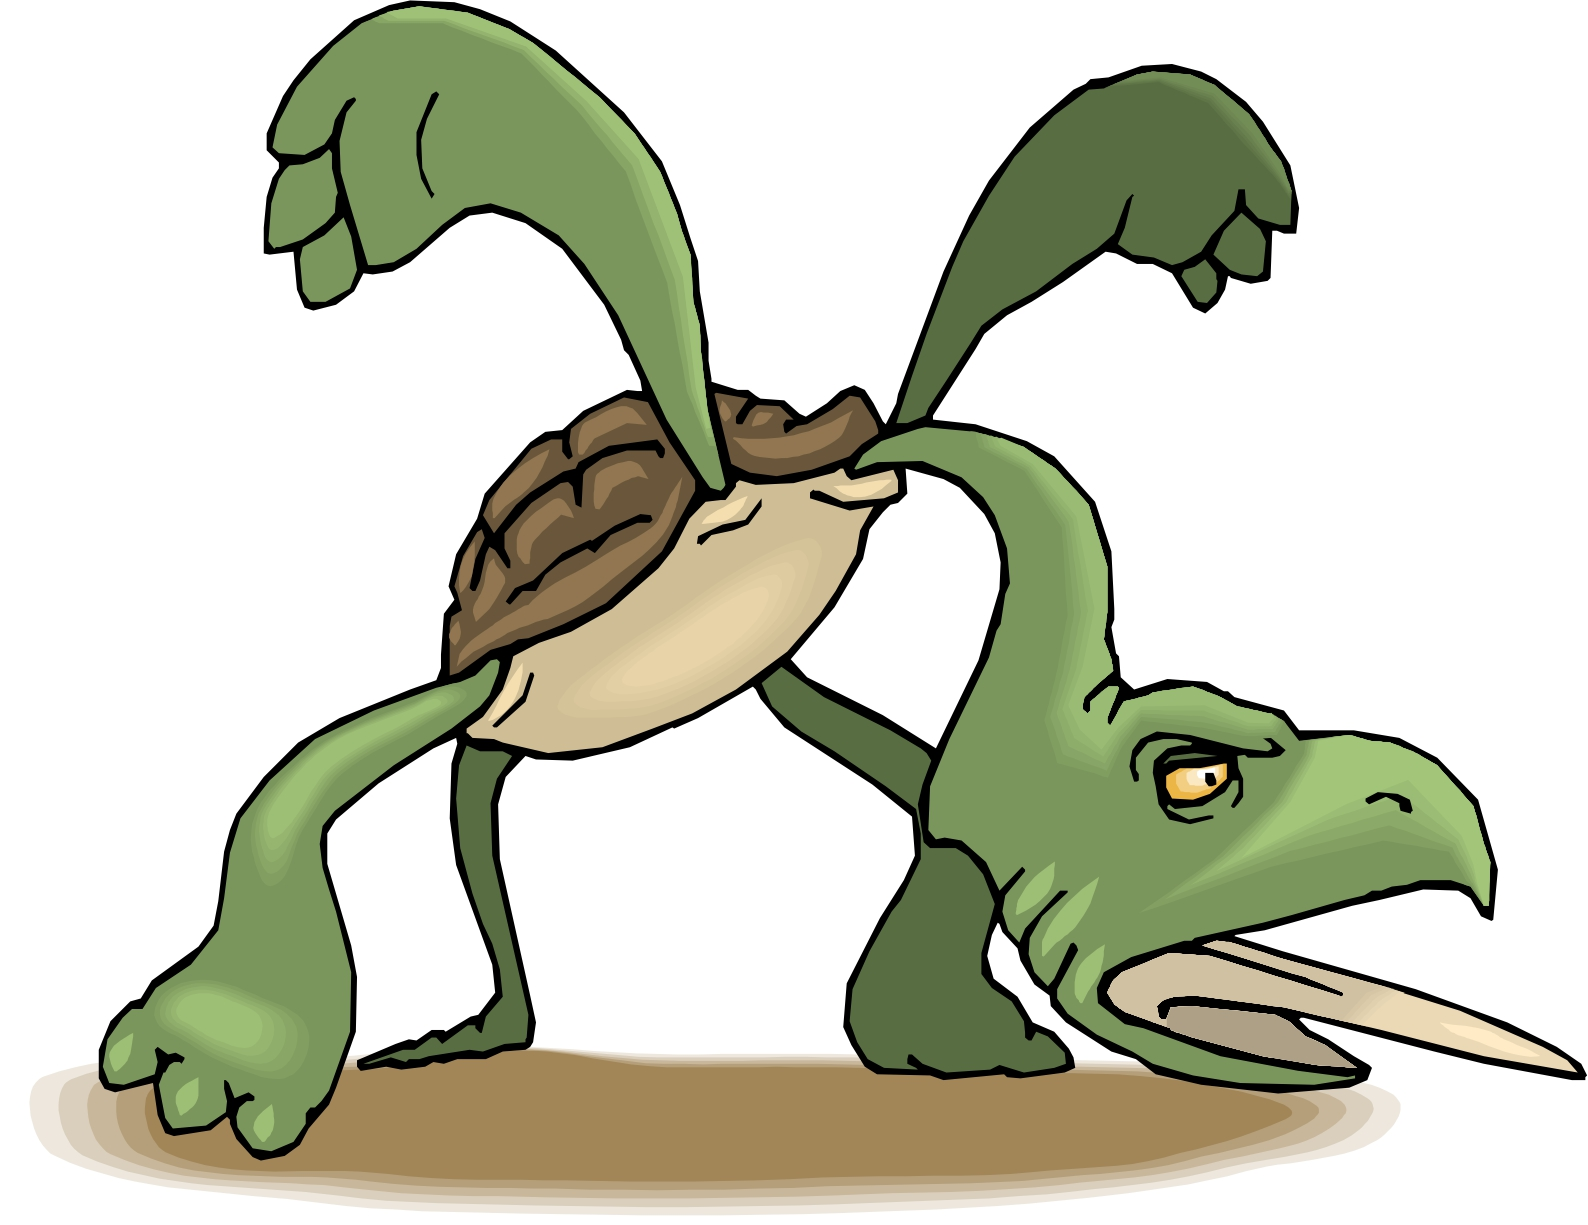 Turtle clipart angry #8